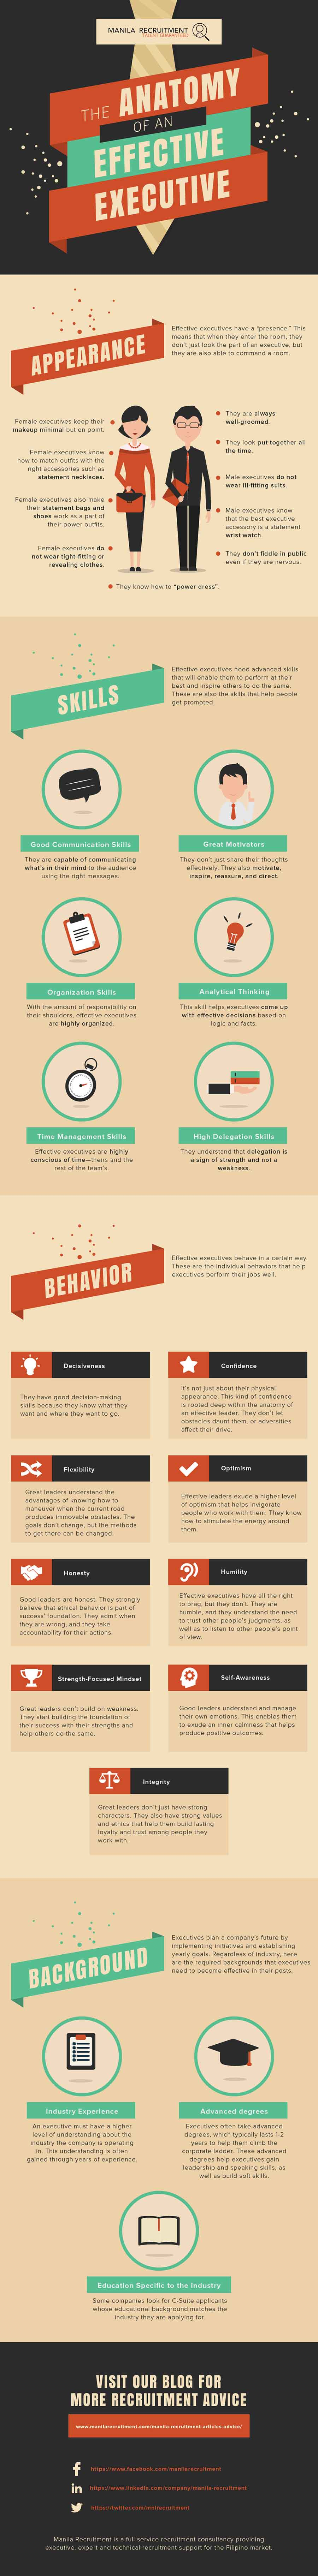 The Anatomy of an Effective Executive [Infographic]